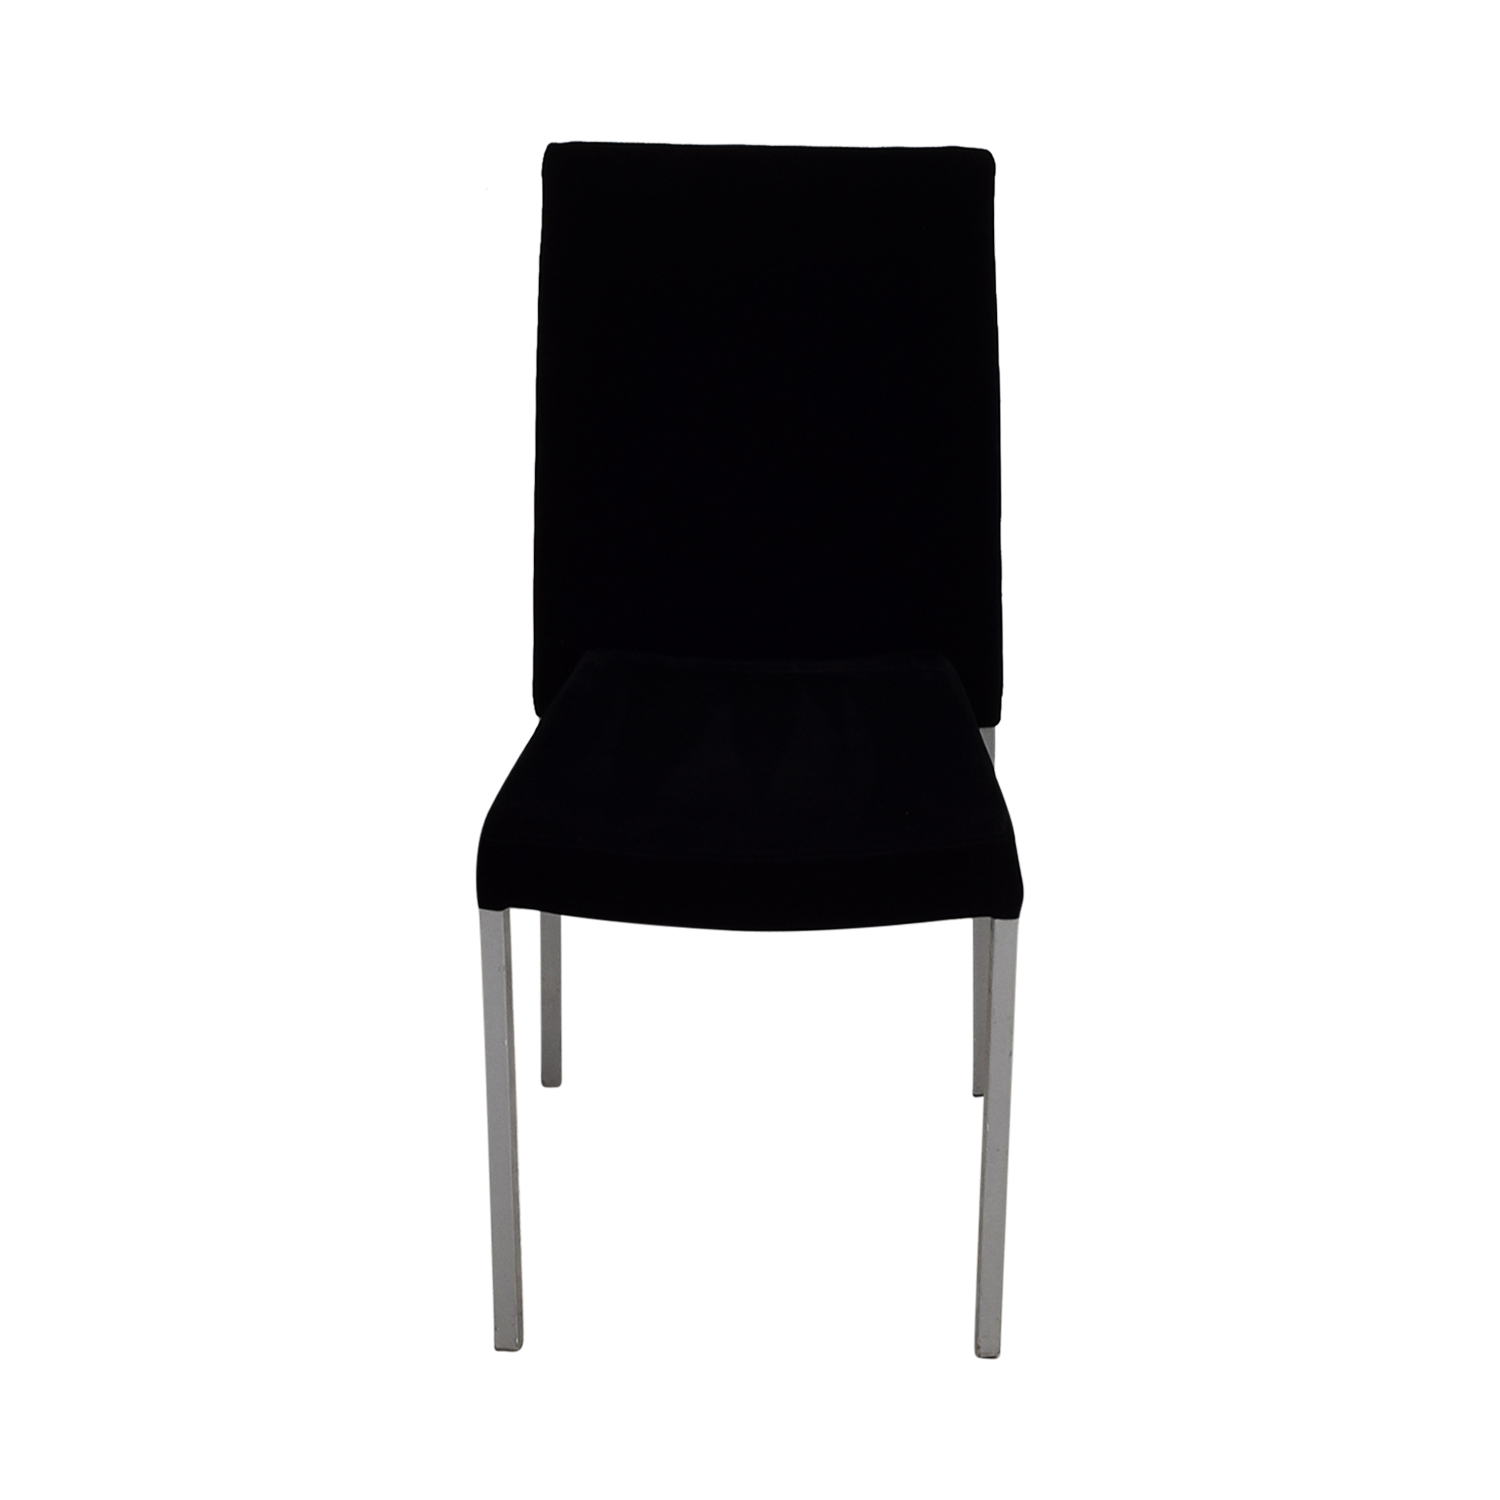 Modern Metal and Black Plush Fabric Chair second hand